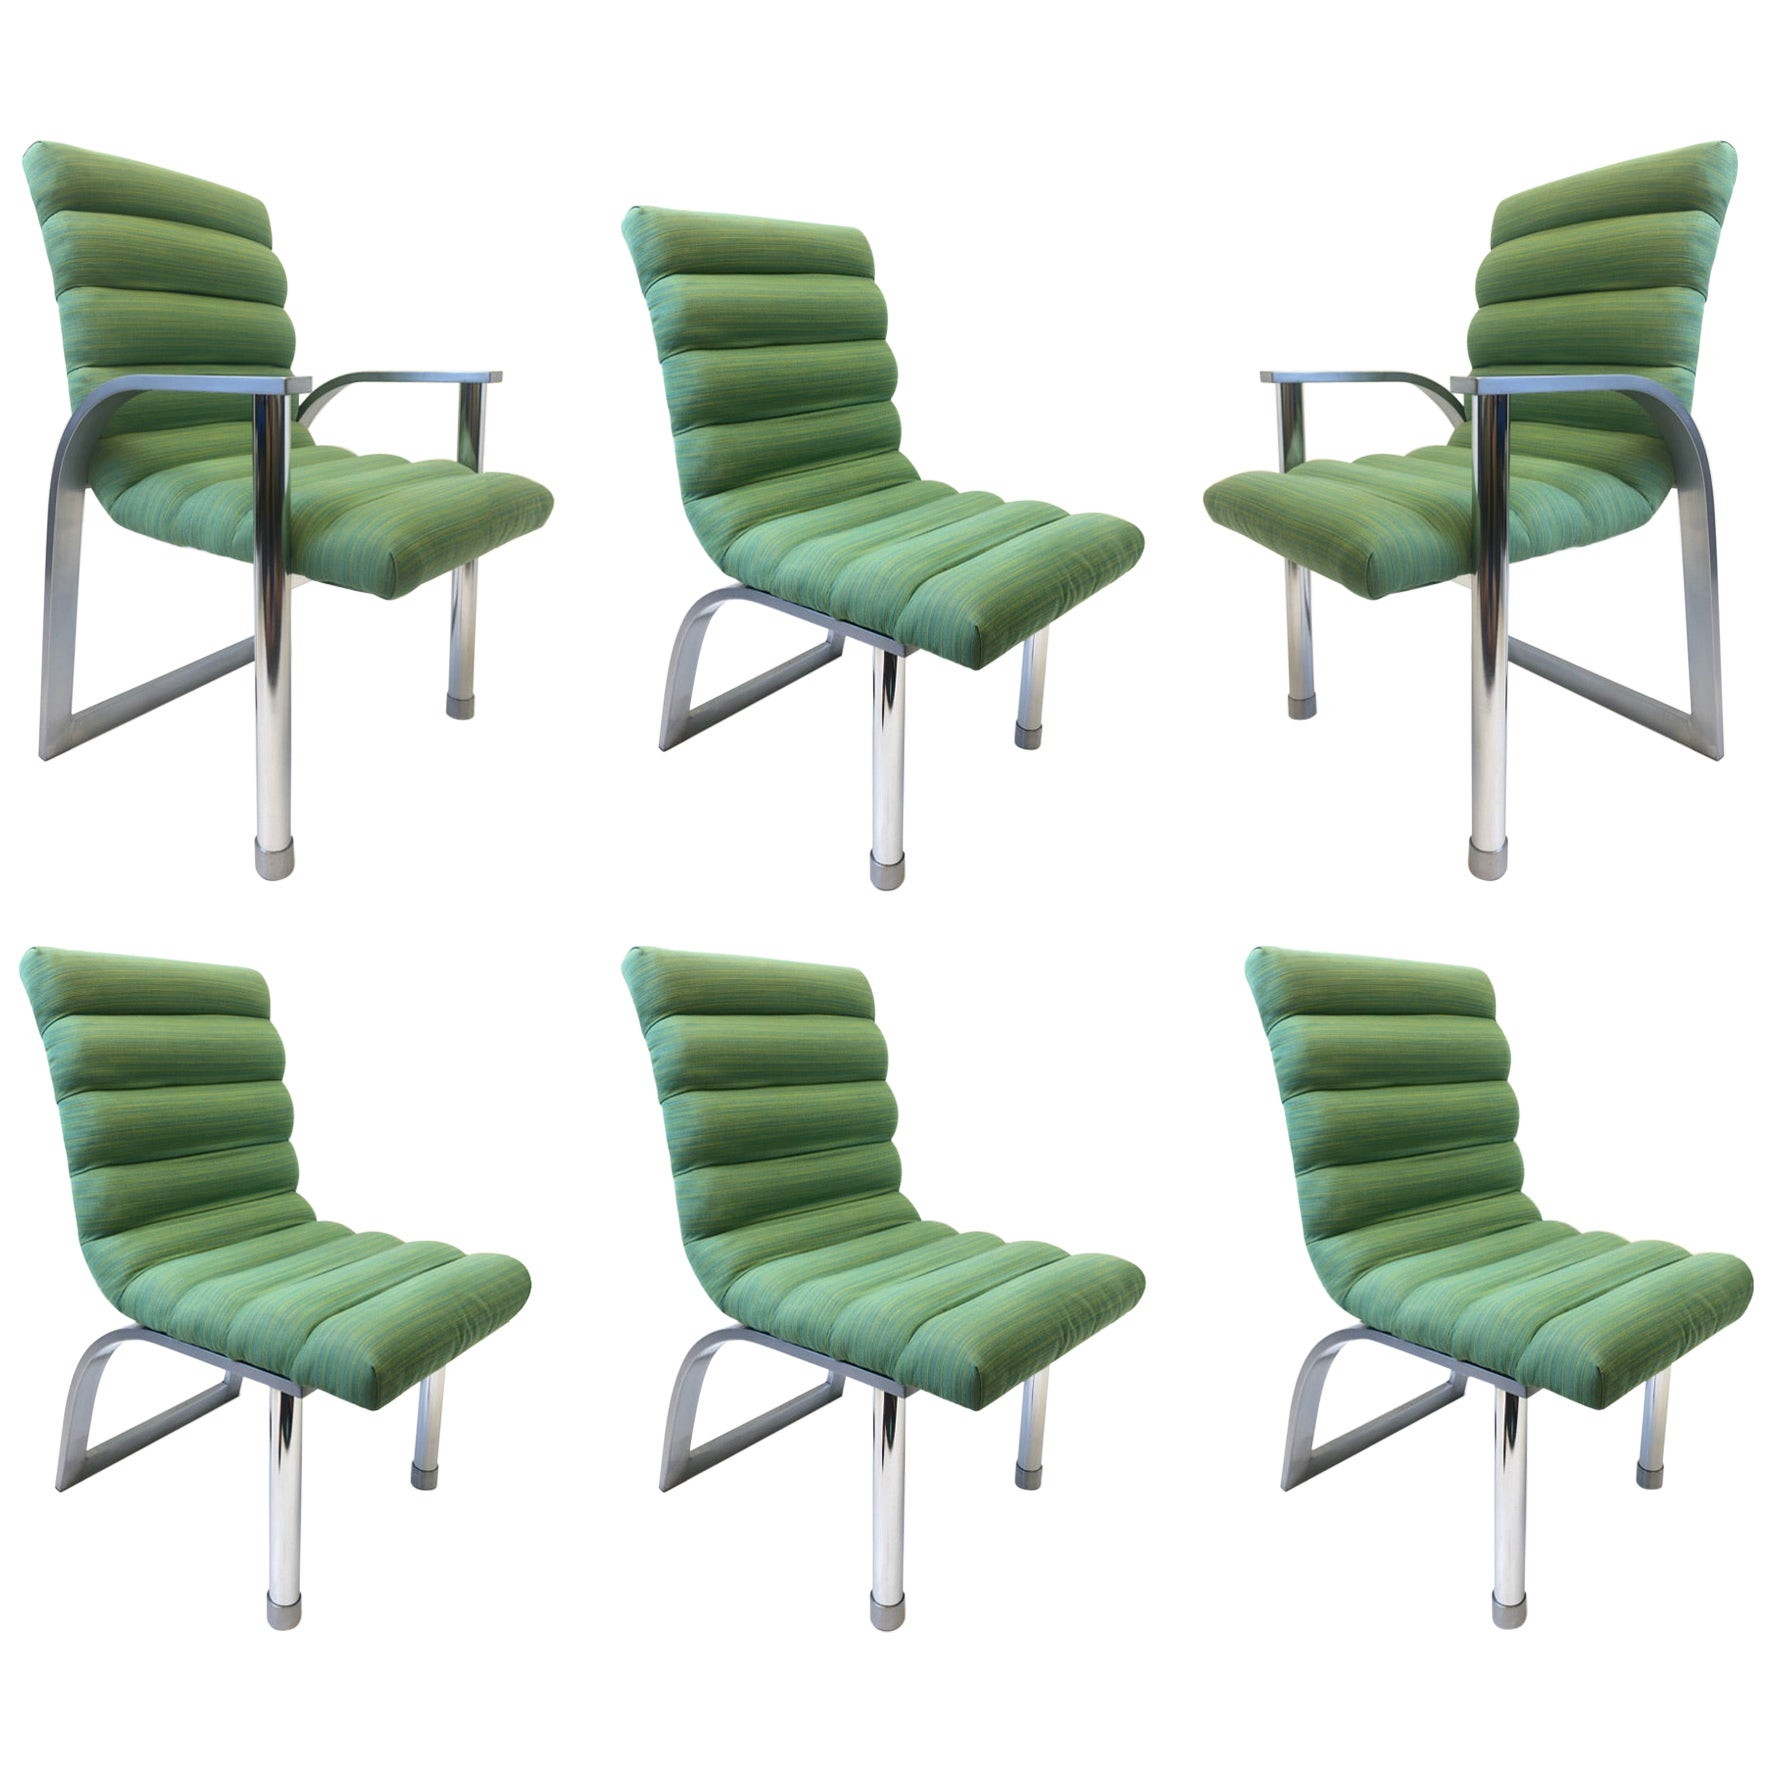 Set of Six Stainless Steel and Green Fabric Dining Chairs by Jay Spectre